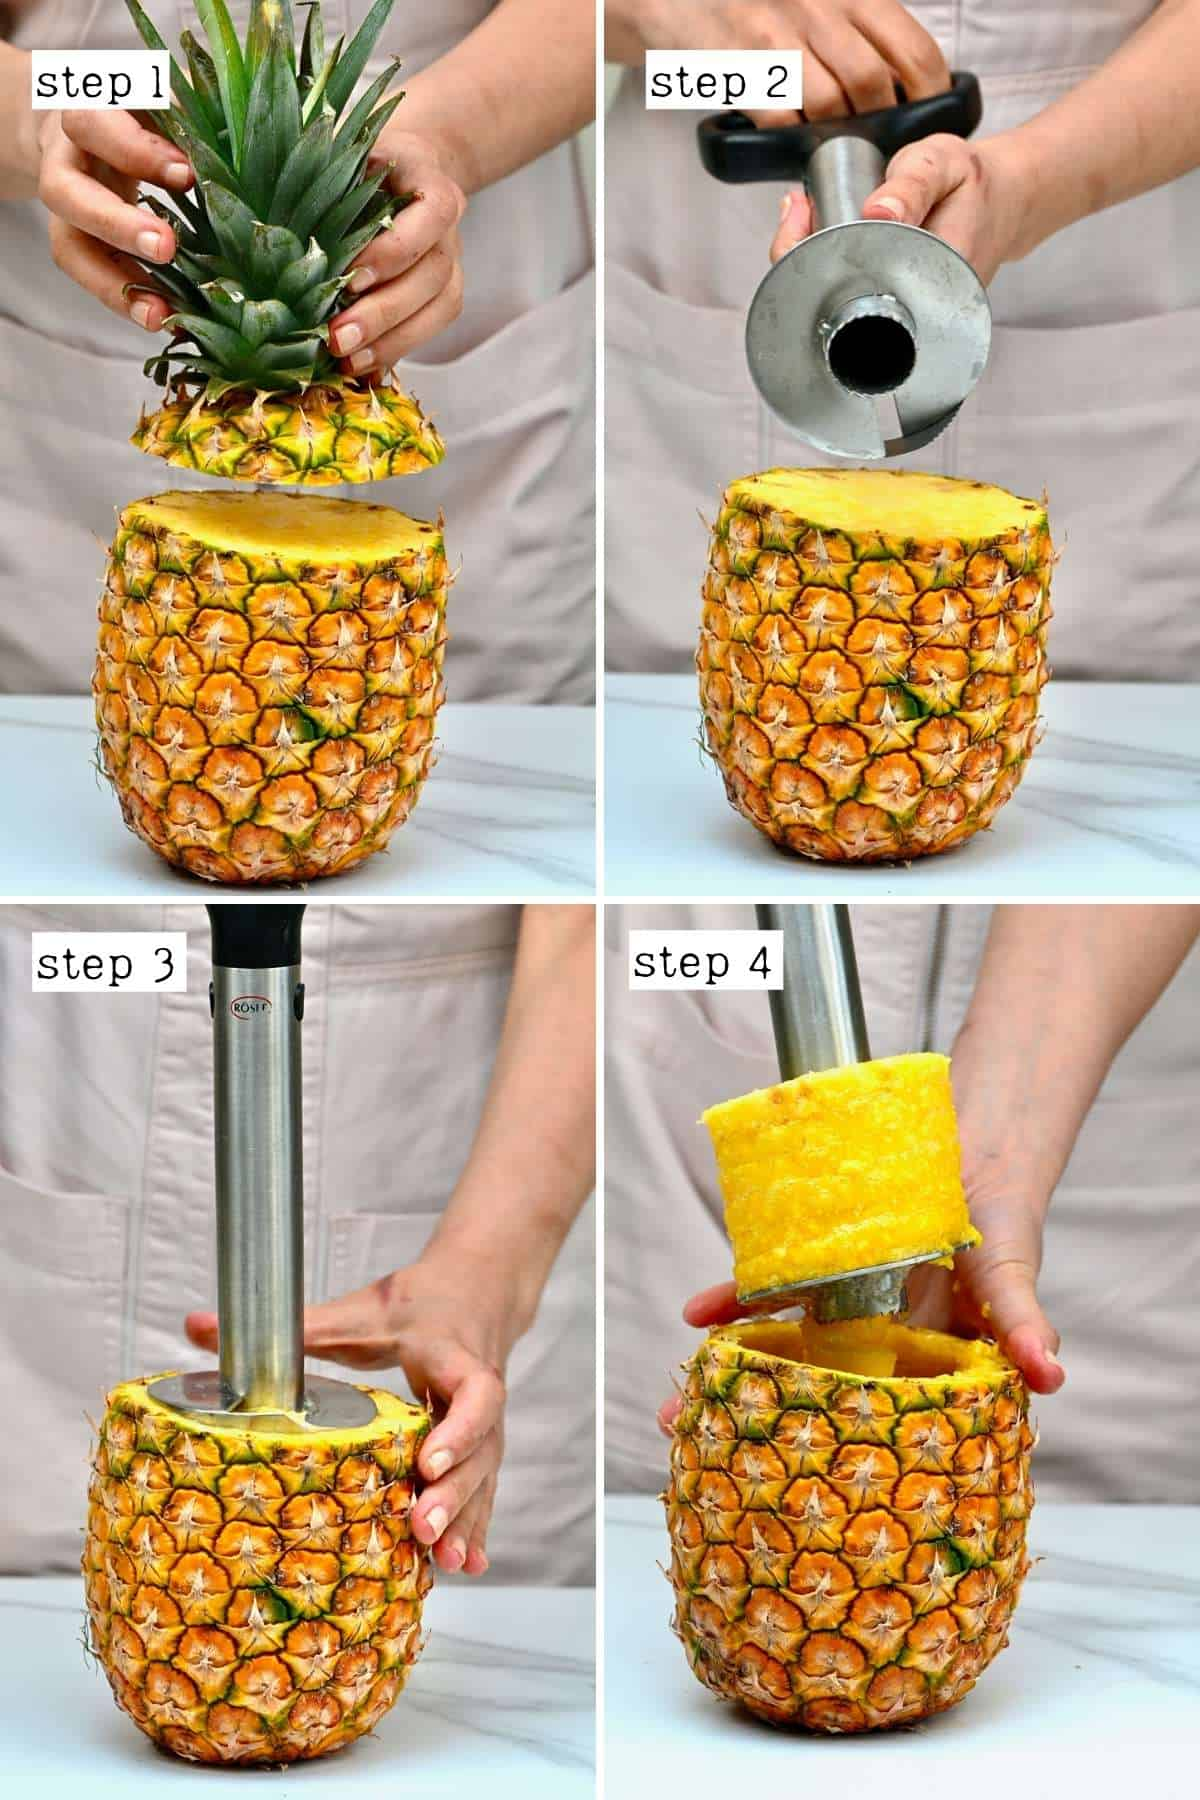 Steps for coring a pineapple